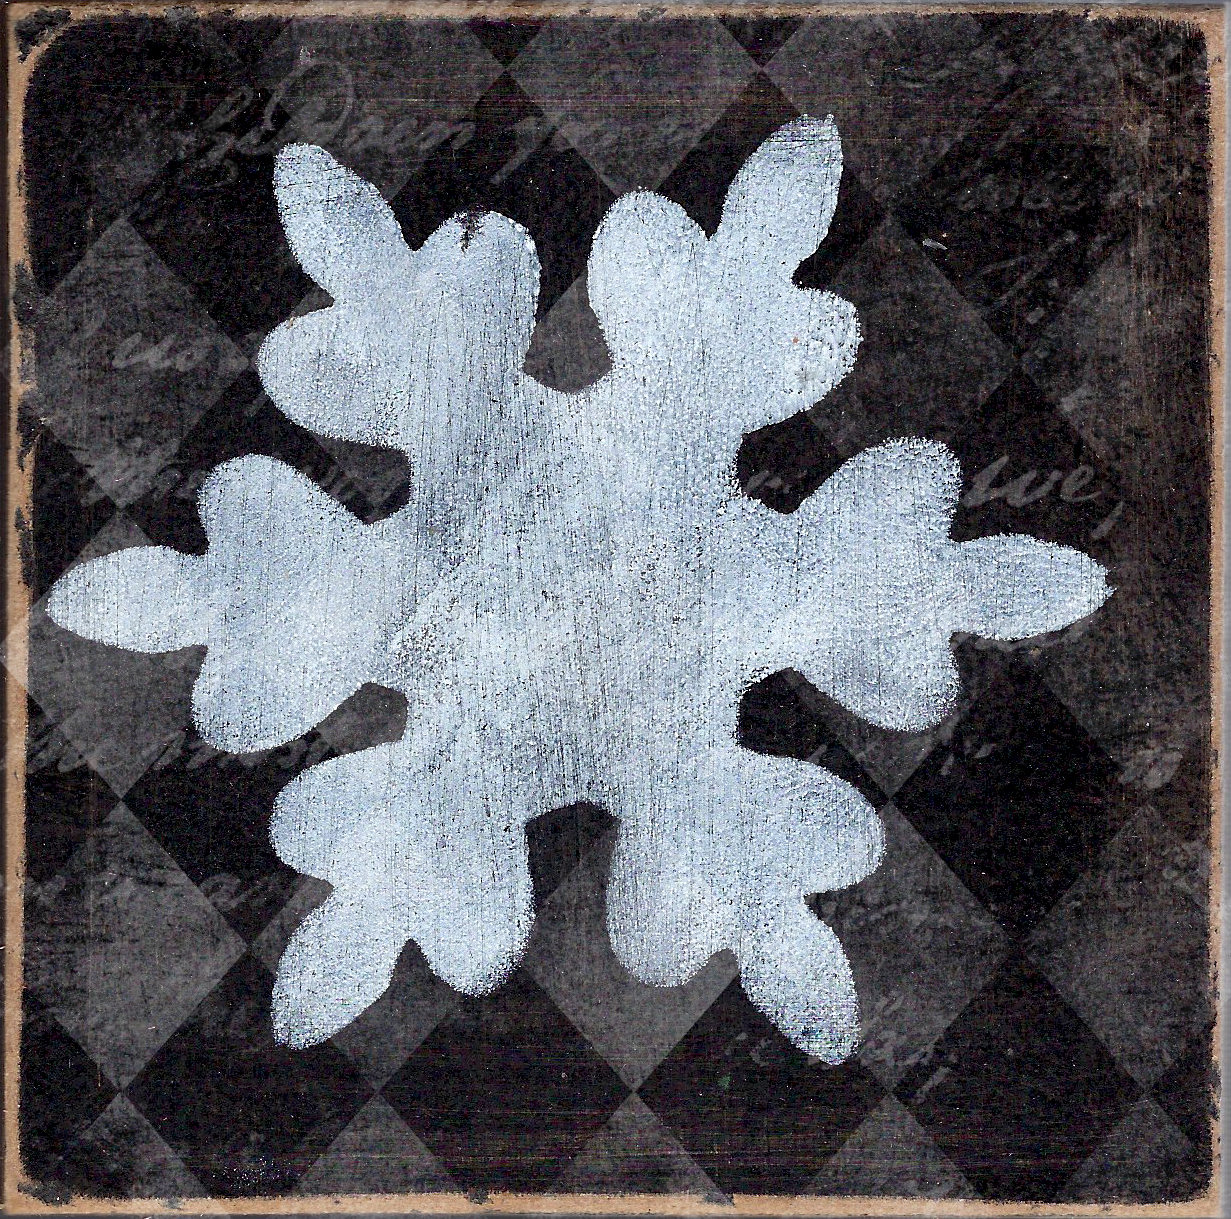 Black and white original Snowflake 2 4x4